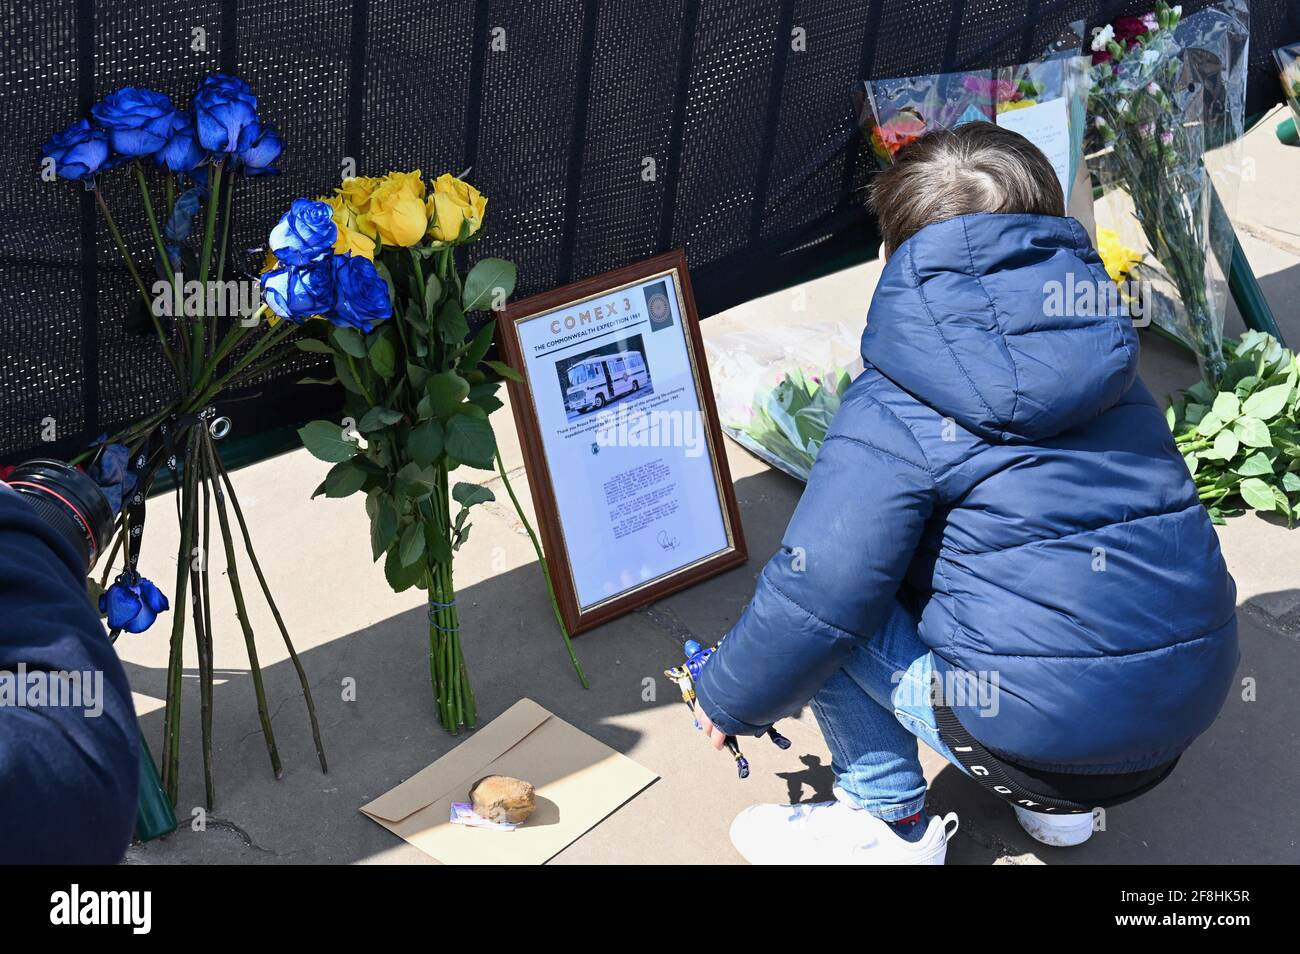 London.UK. Royal well wishers leave floral tributes to the Duke of Edinburgh following his death on Friday 09.04.2021. Mourners have been asked to stay away from Royal residences because of the Coronavirus Pandemic. Buckingham Palace, London. Stock Photo